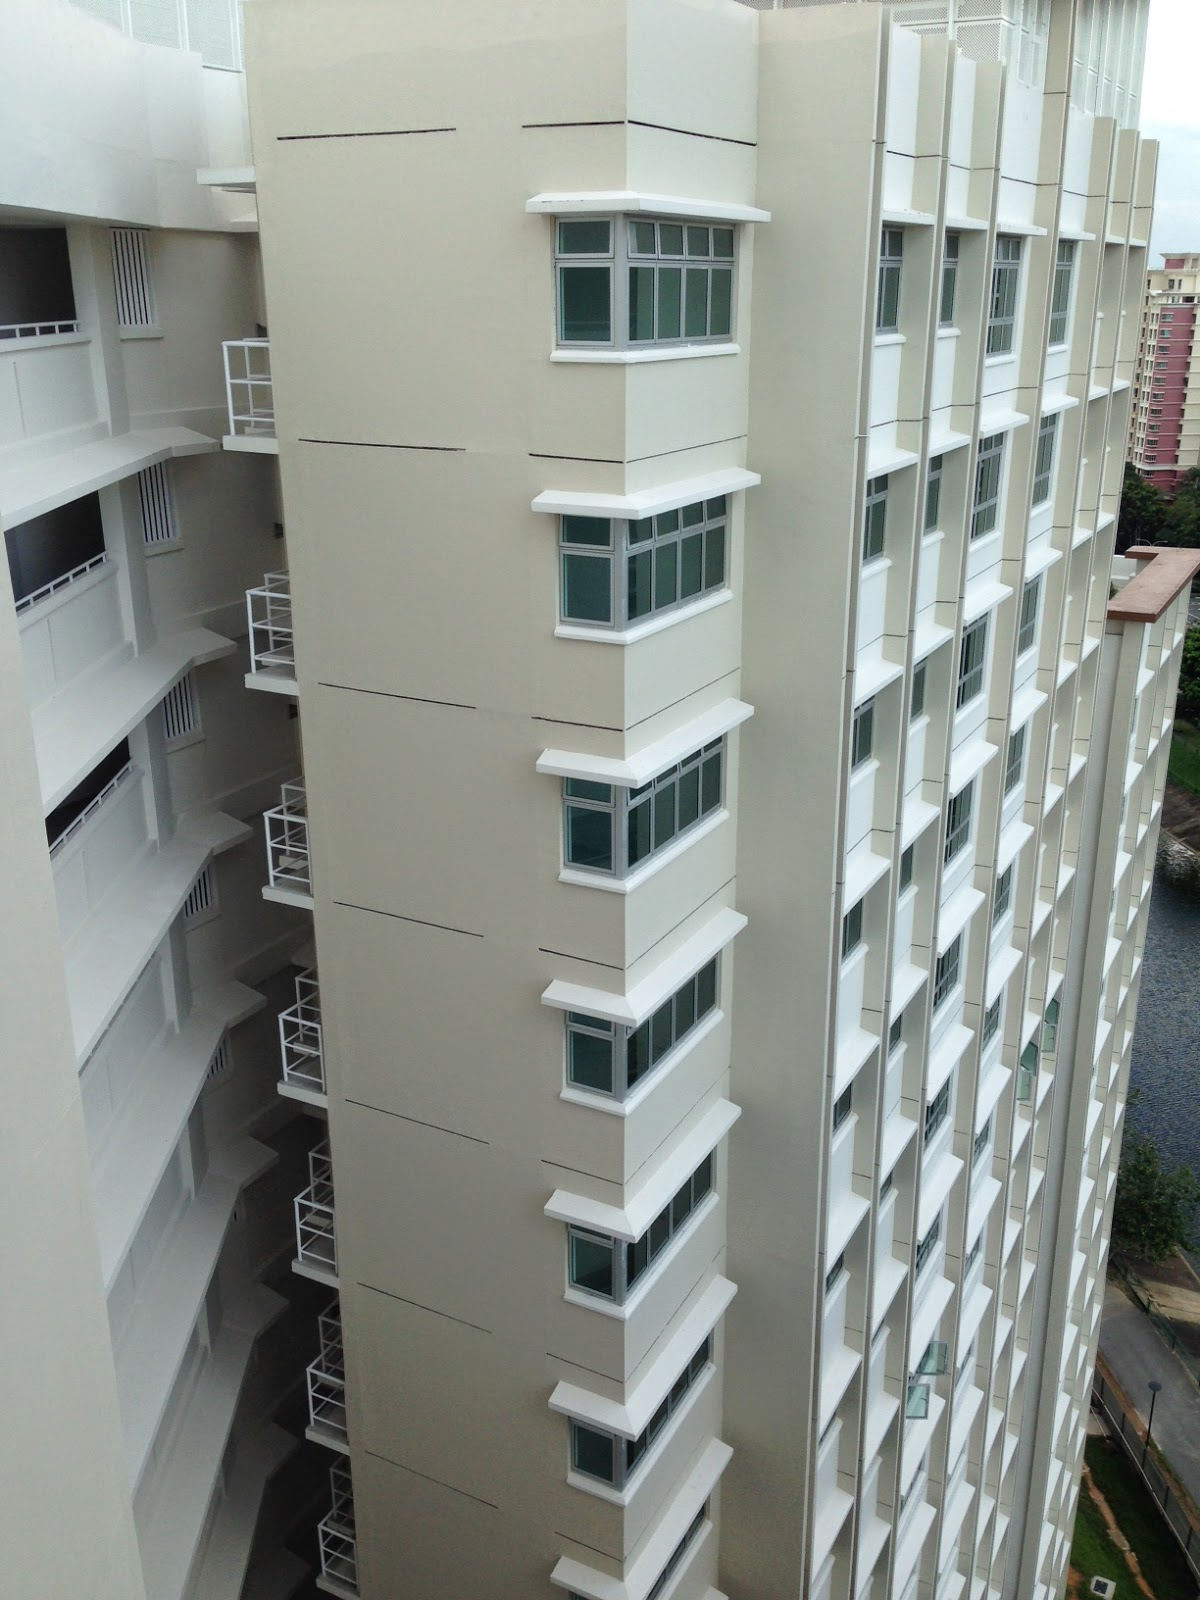 Singapore News Today Tips On Choosing Your Hdb Bto Unit